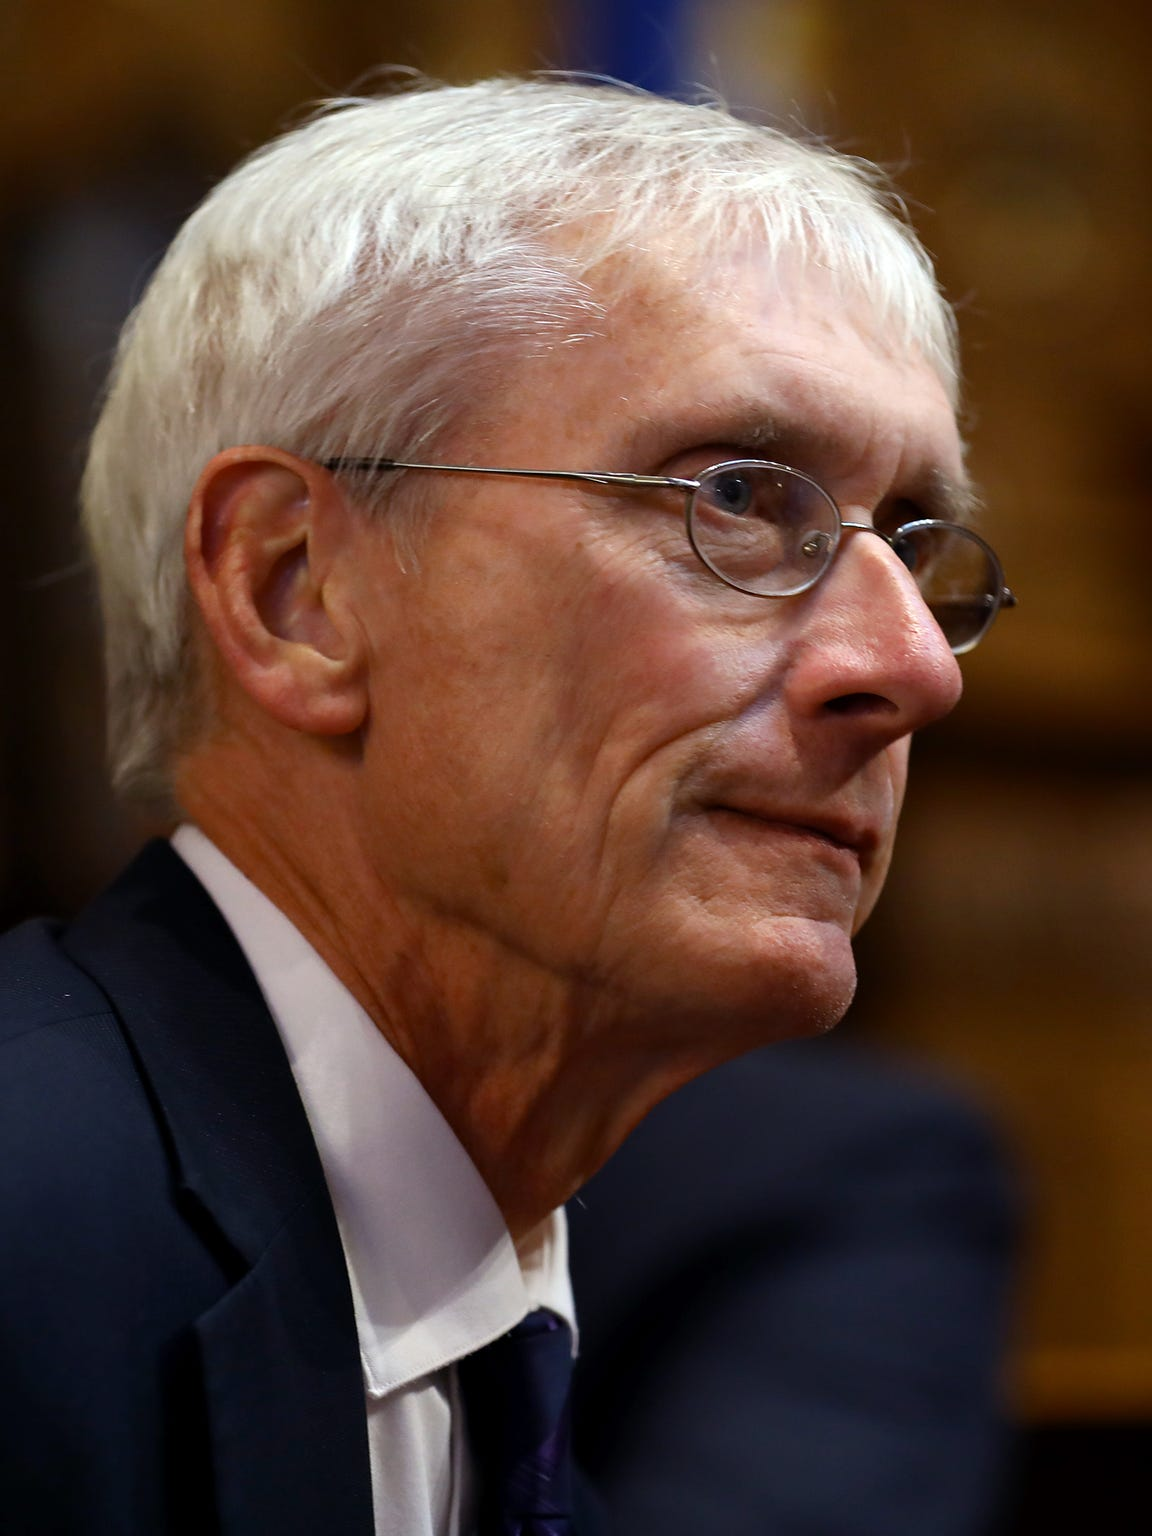 Democratic gubernatorial candidate Tony Evers has called